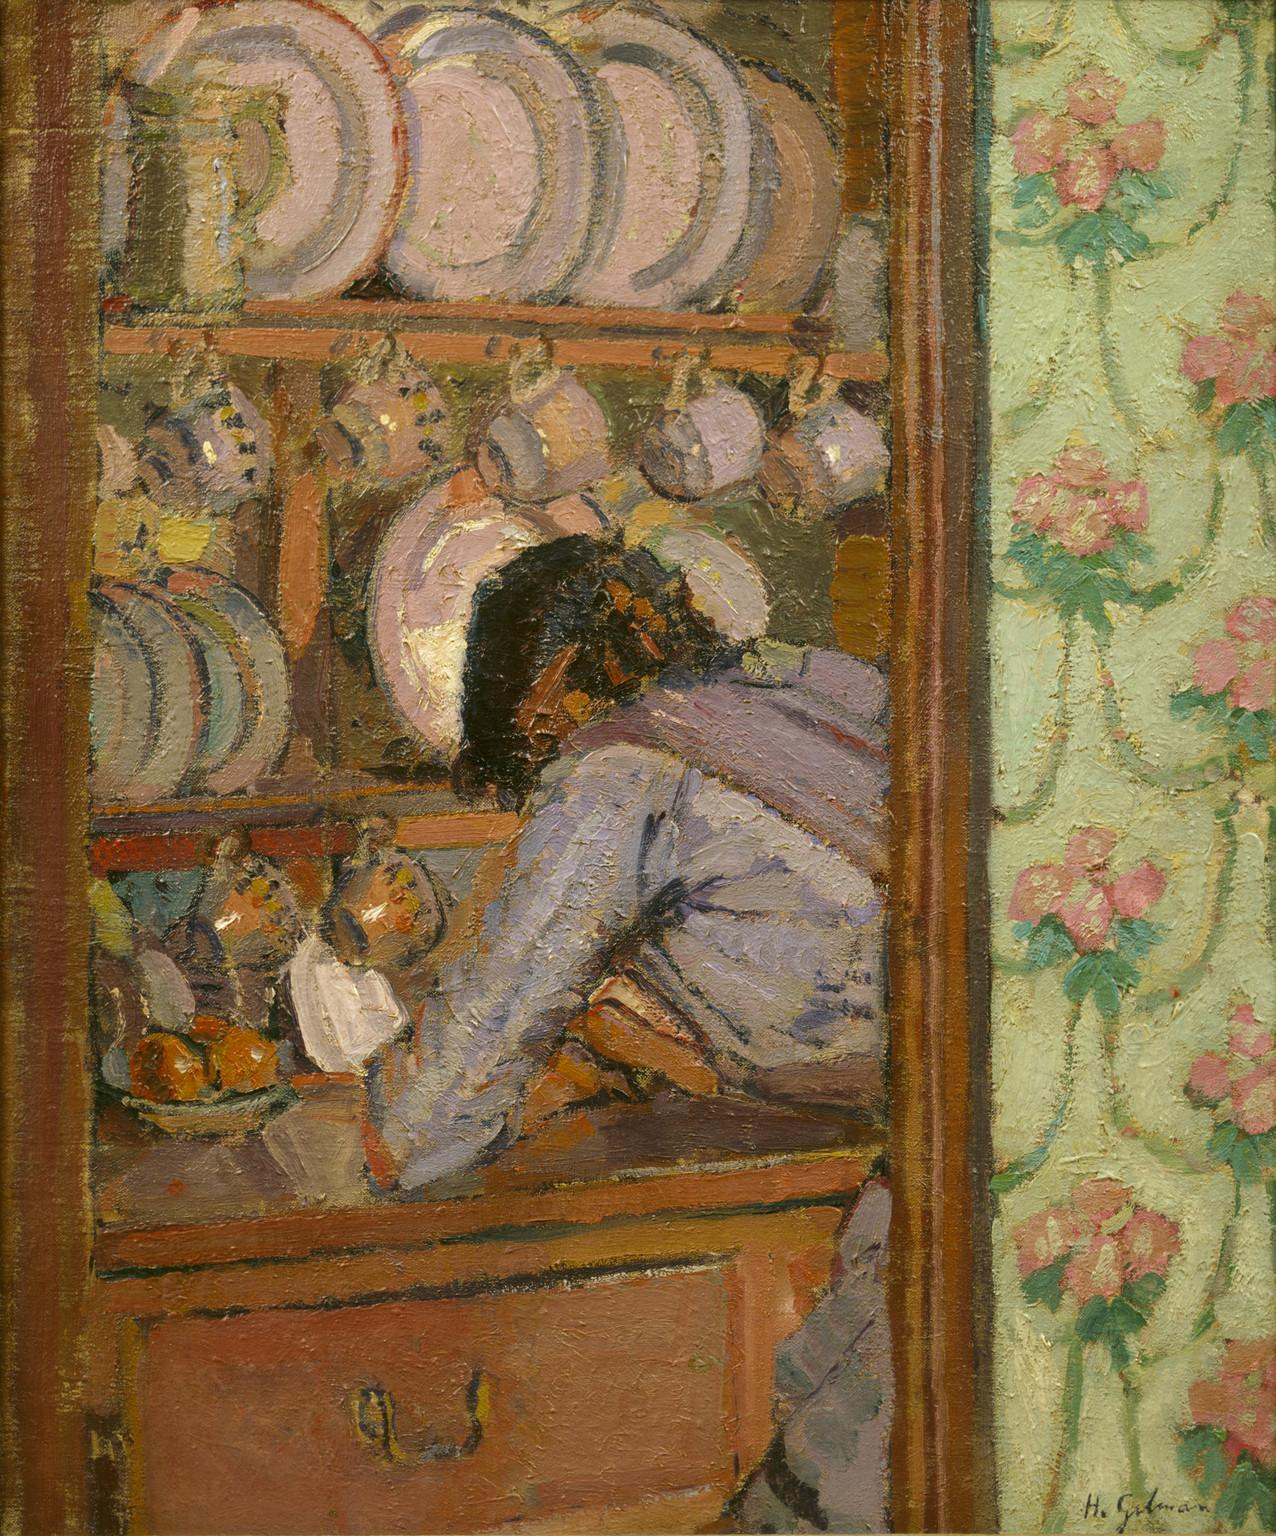 Same artist as 'In Sickert's House at Neuville', this is 'Shopping List' by Harold Gilman 1912 #CamdenTownGroup http://t.co/QPBlQeNJtq